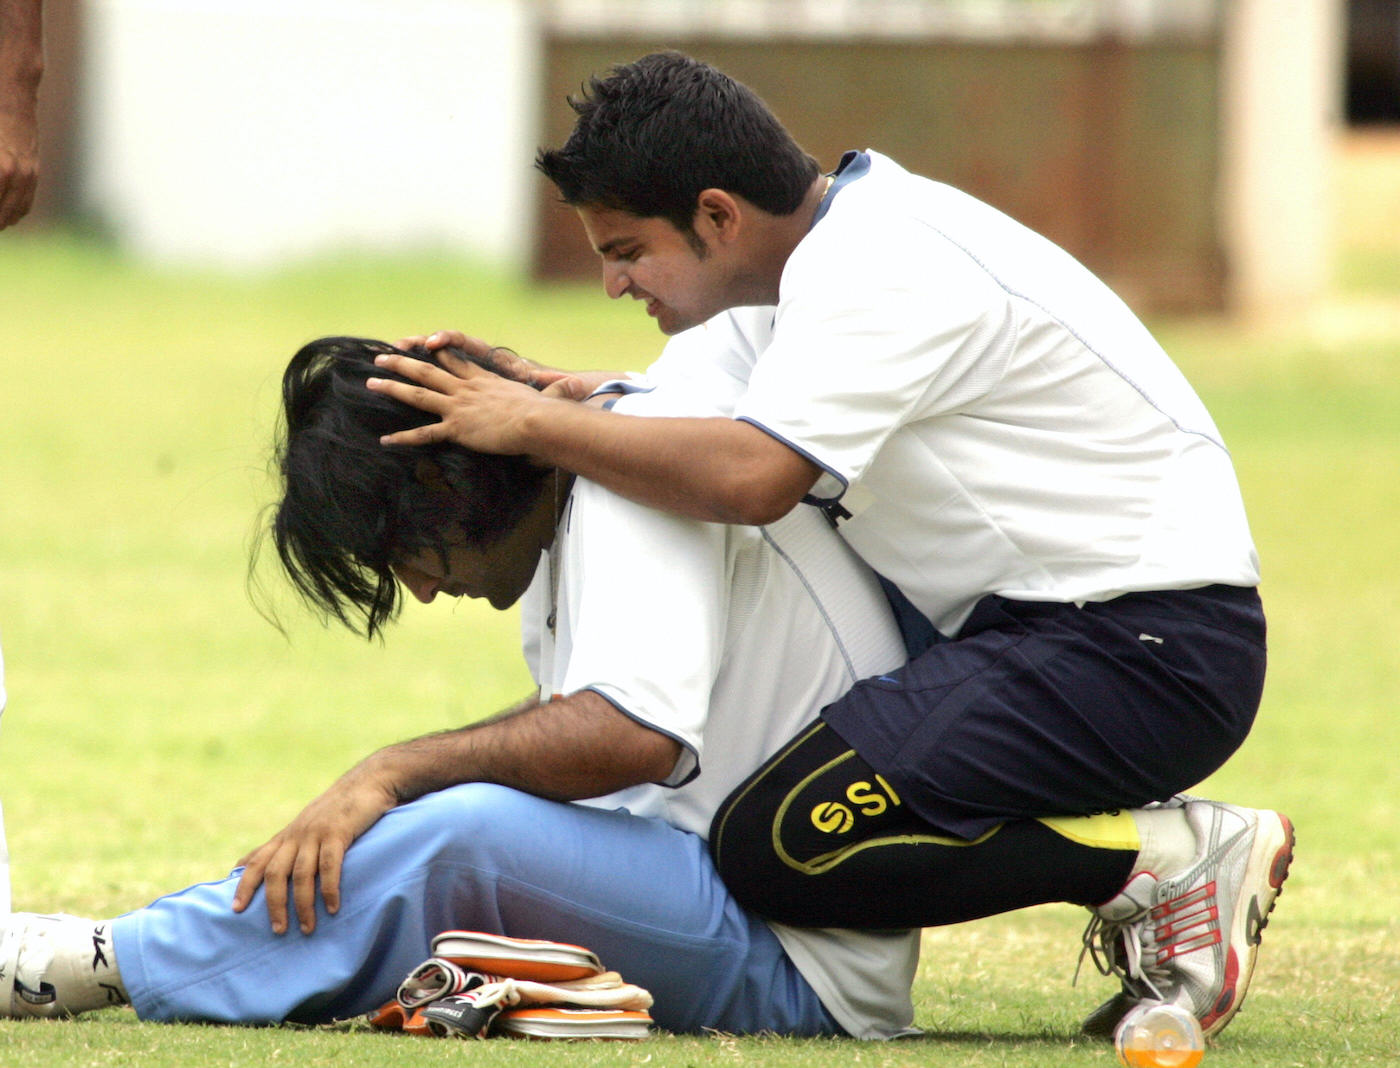 The real reason Dhoni decided to get rid of his straight perm